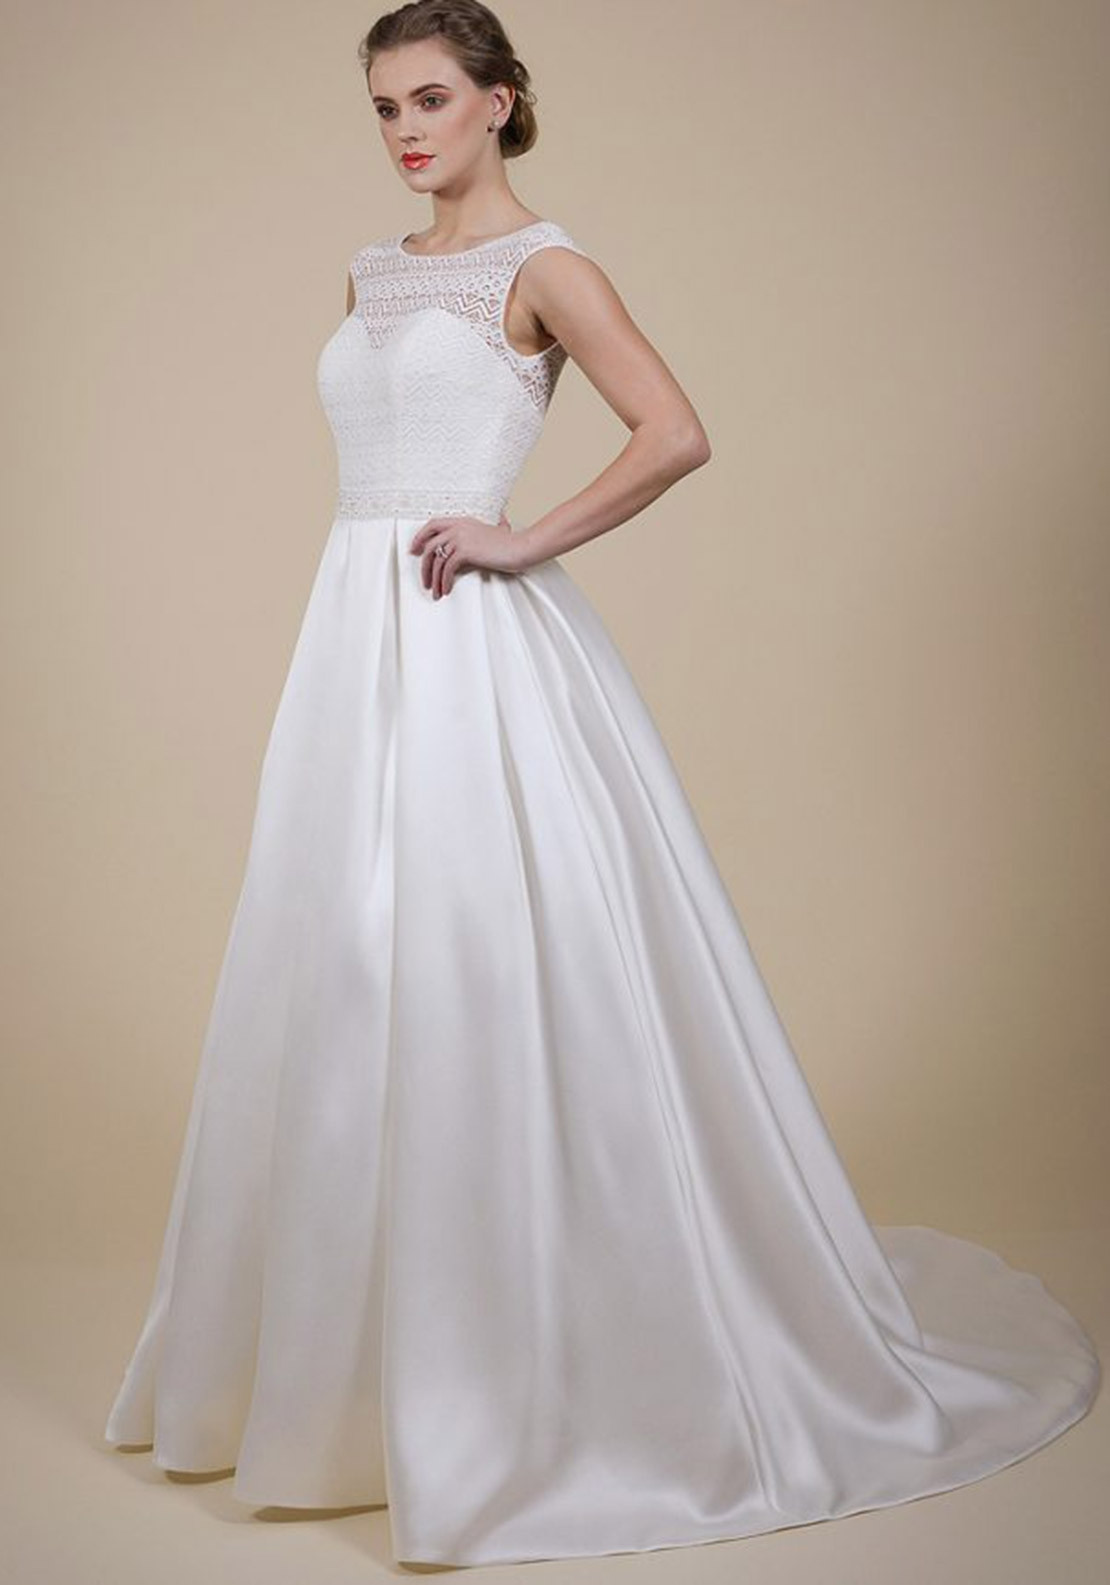 e8cf9d40b91 Catherine Parry Martine Wedding Dress. Be the first to review this product